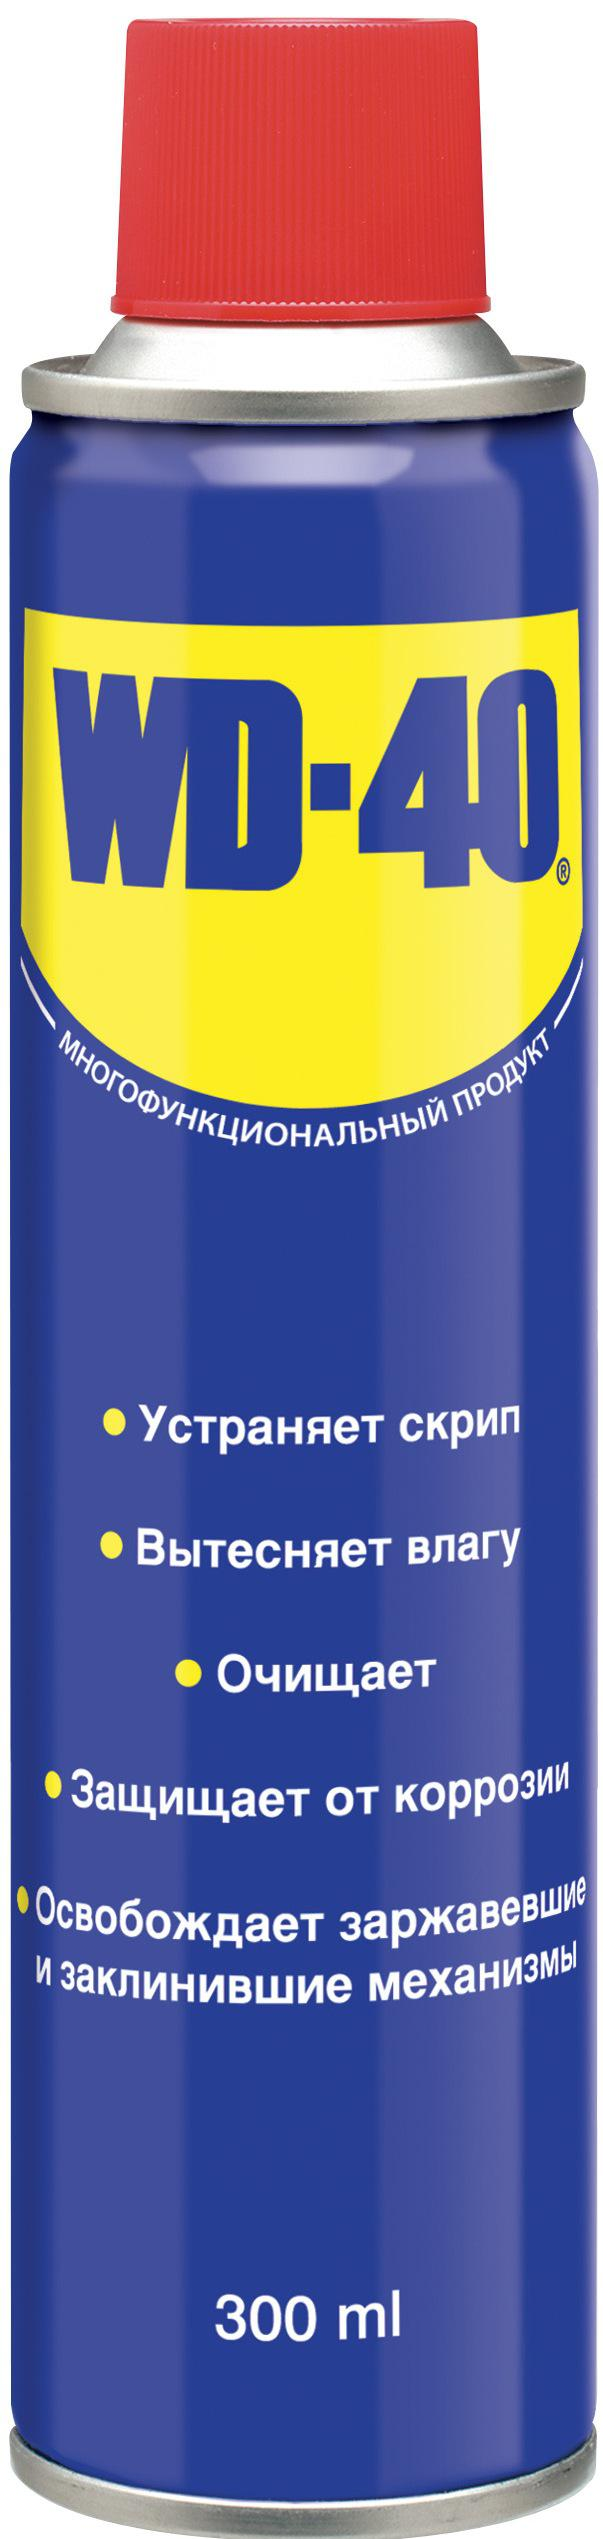 Средство универсальное Wd-40 Wd-00016 300 ml original 90% new high quality original lg washing machine computer board wd n10230d wd n10270dj wd n12235dj motherboard repair